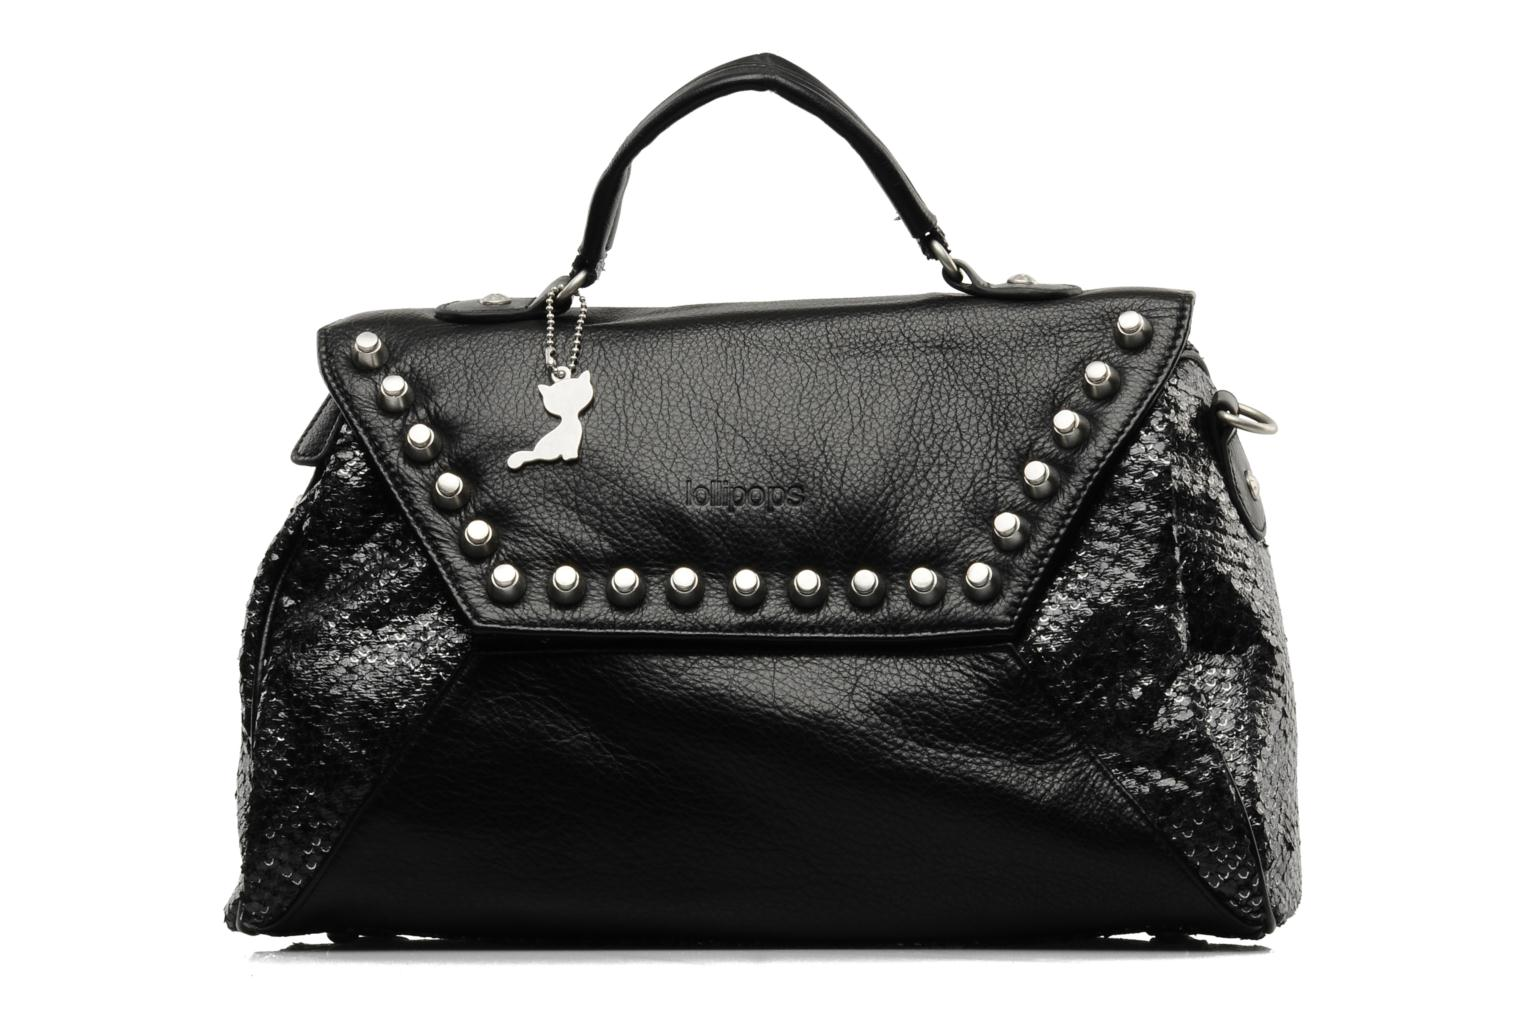 MEDELIN LEATHER BAG Noir